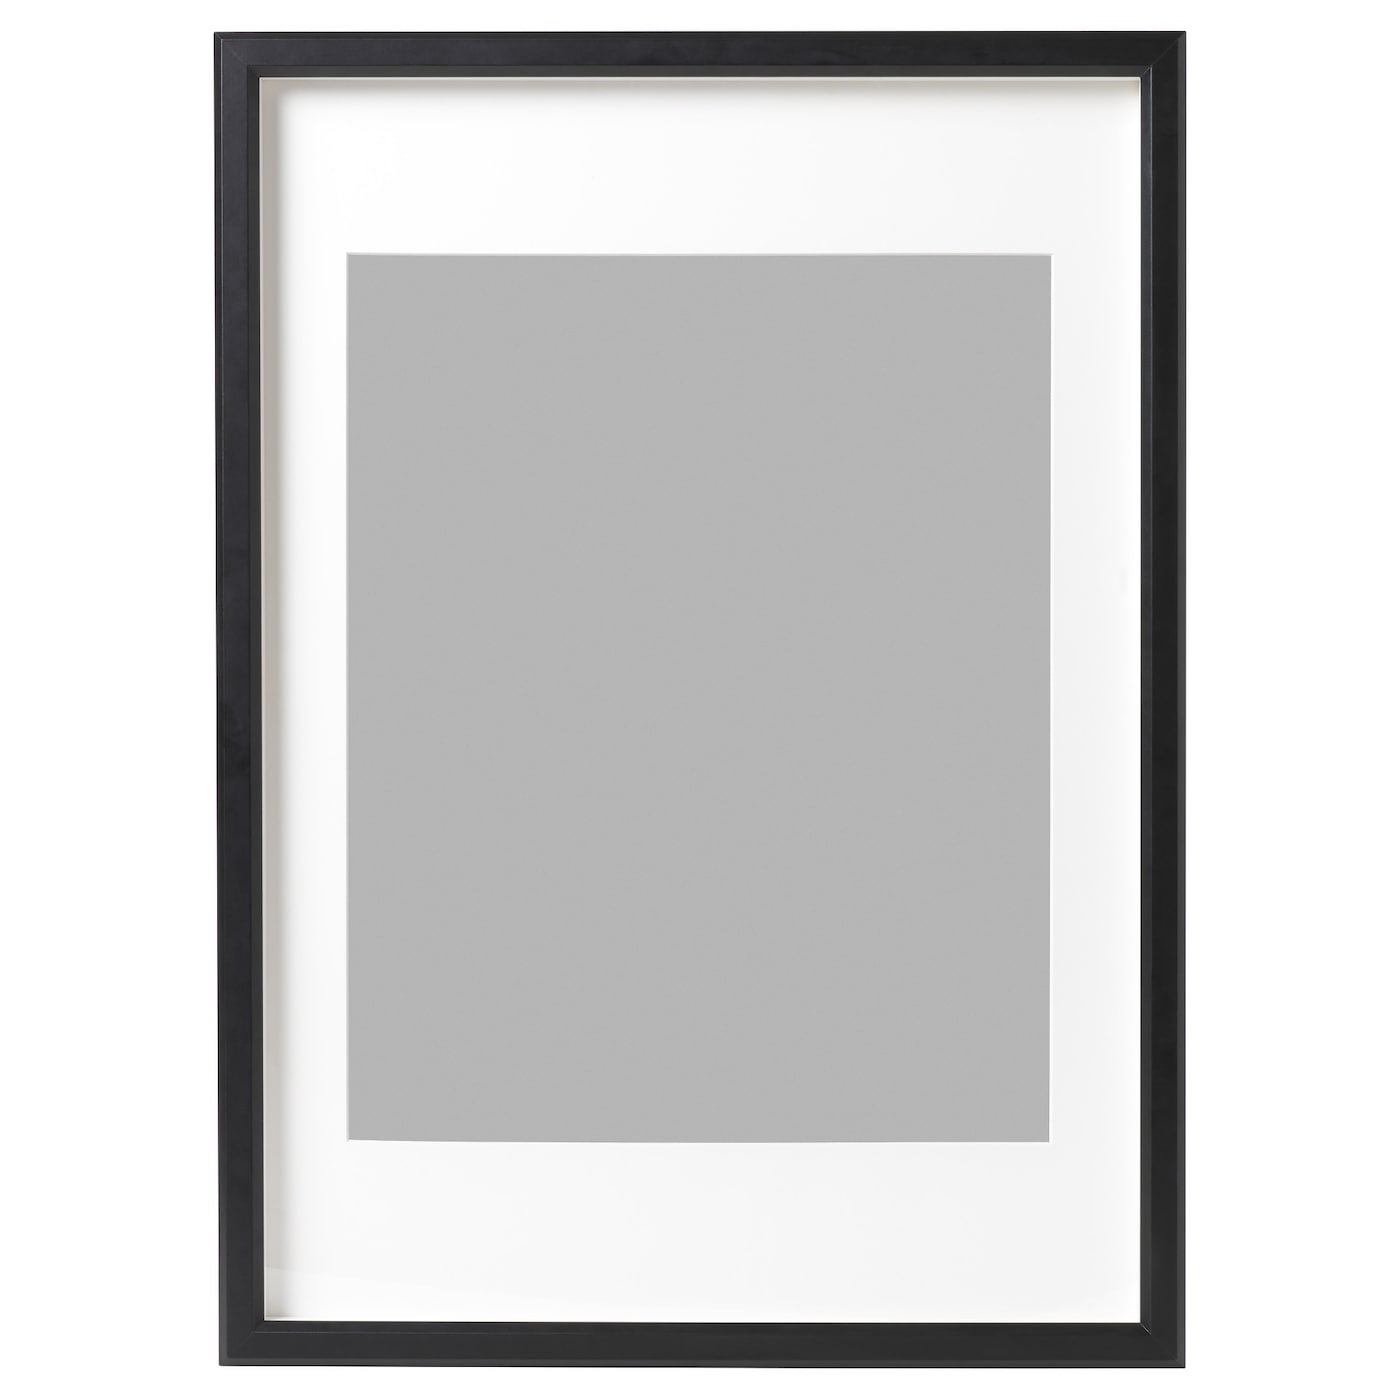 Gunnabo frame black 50x70 cm ikea - Black days ikea ...